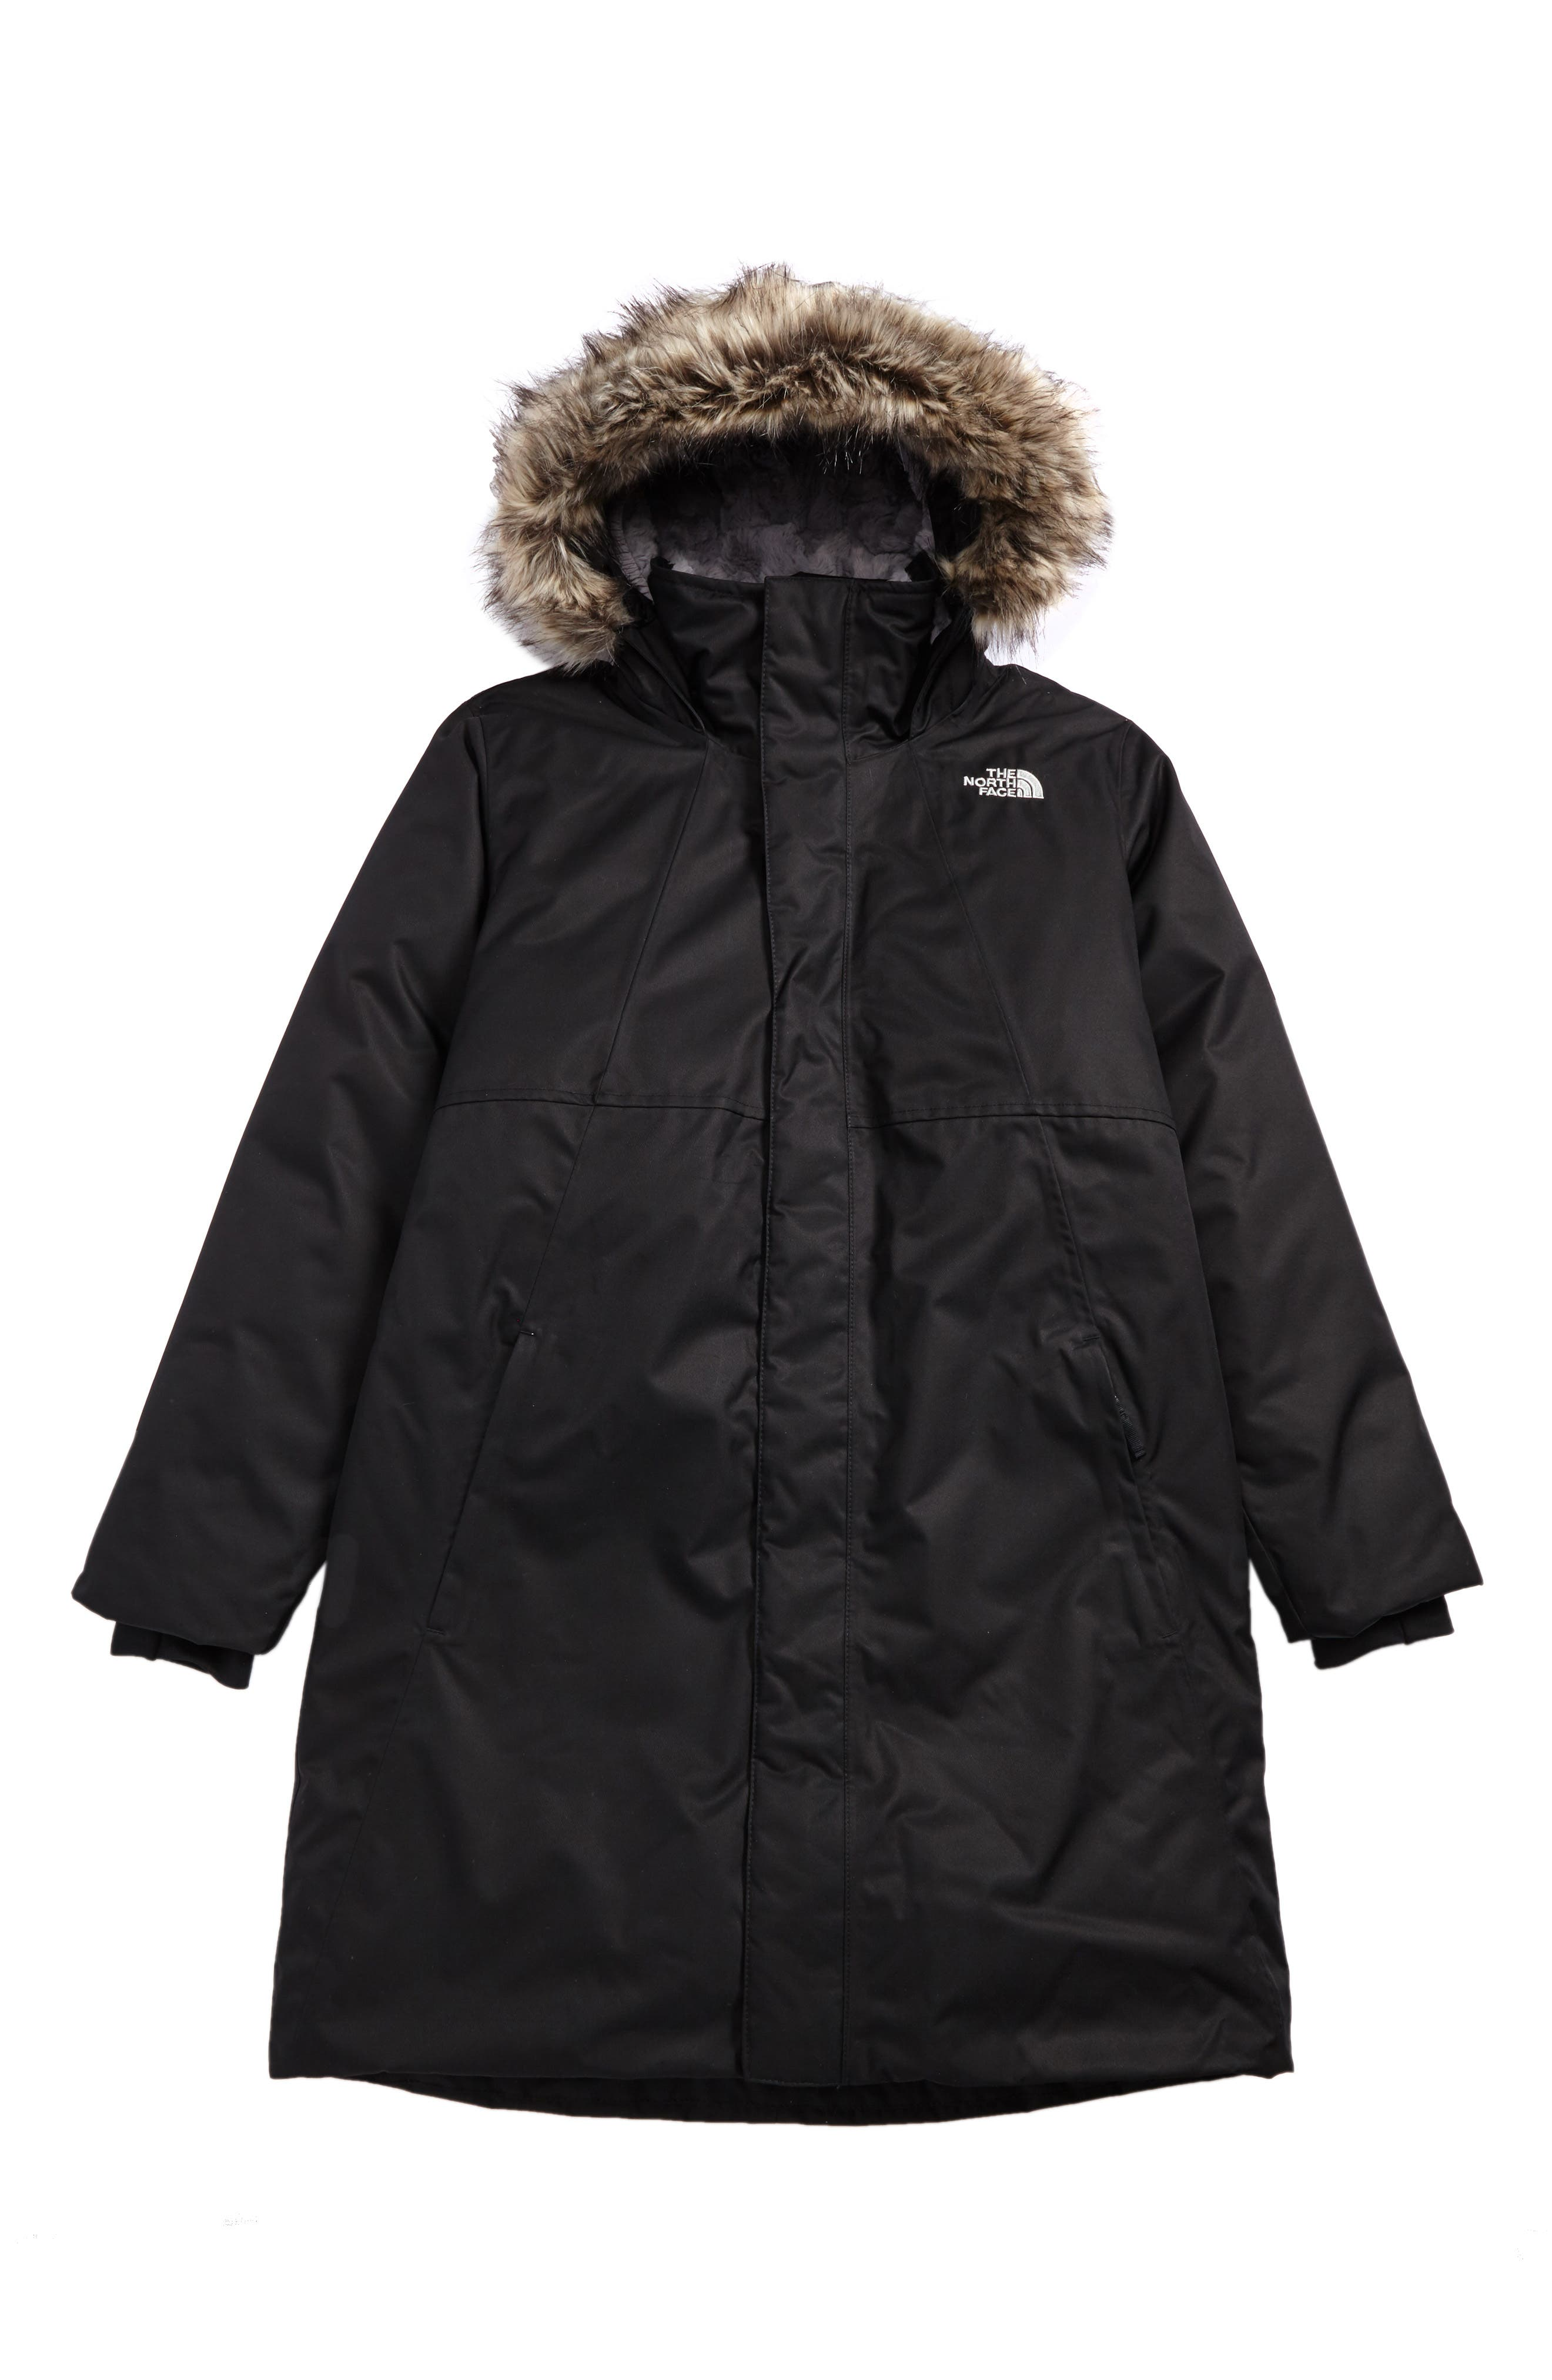 Alternate Image 1 Selected - The North Face Arctic Swirl Waterproof Down Parka (Little Girls & Big Girls)